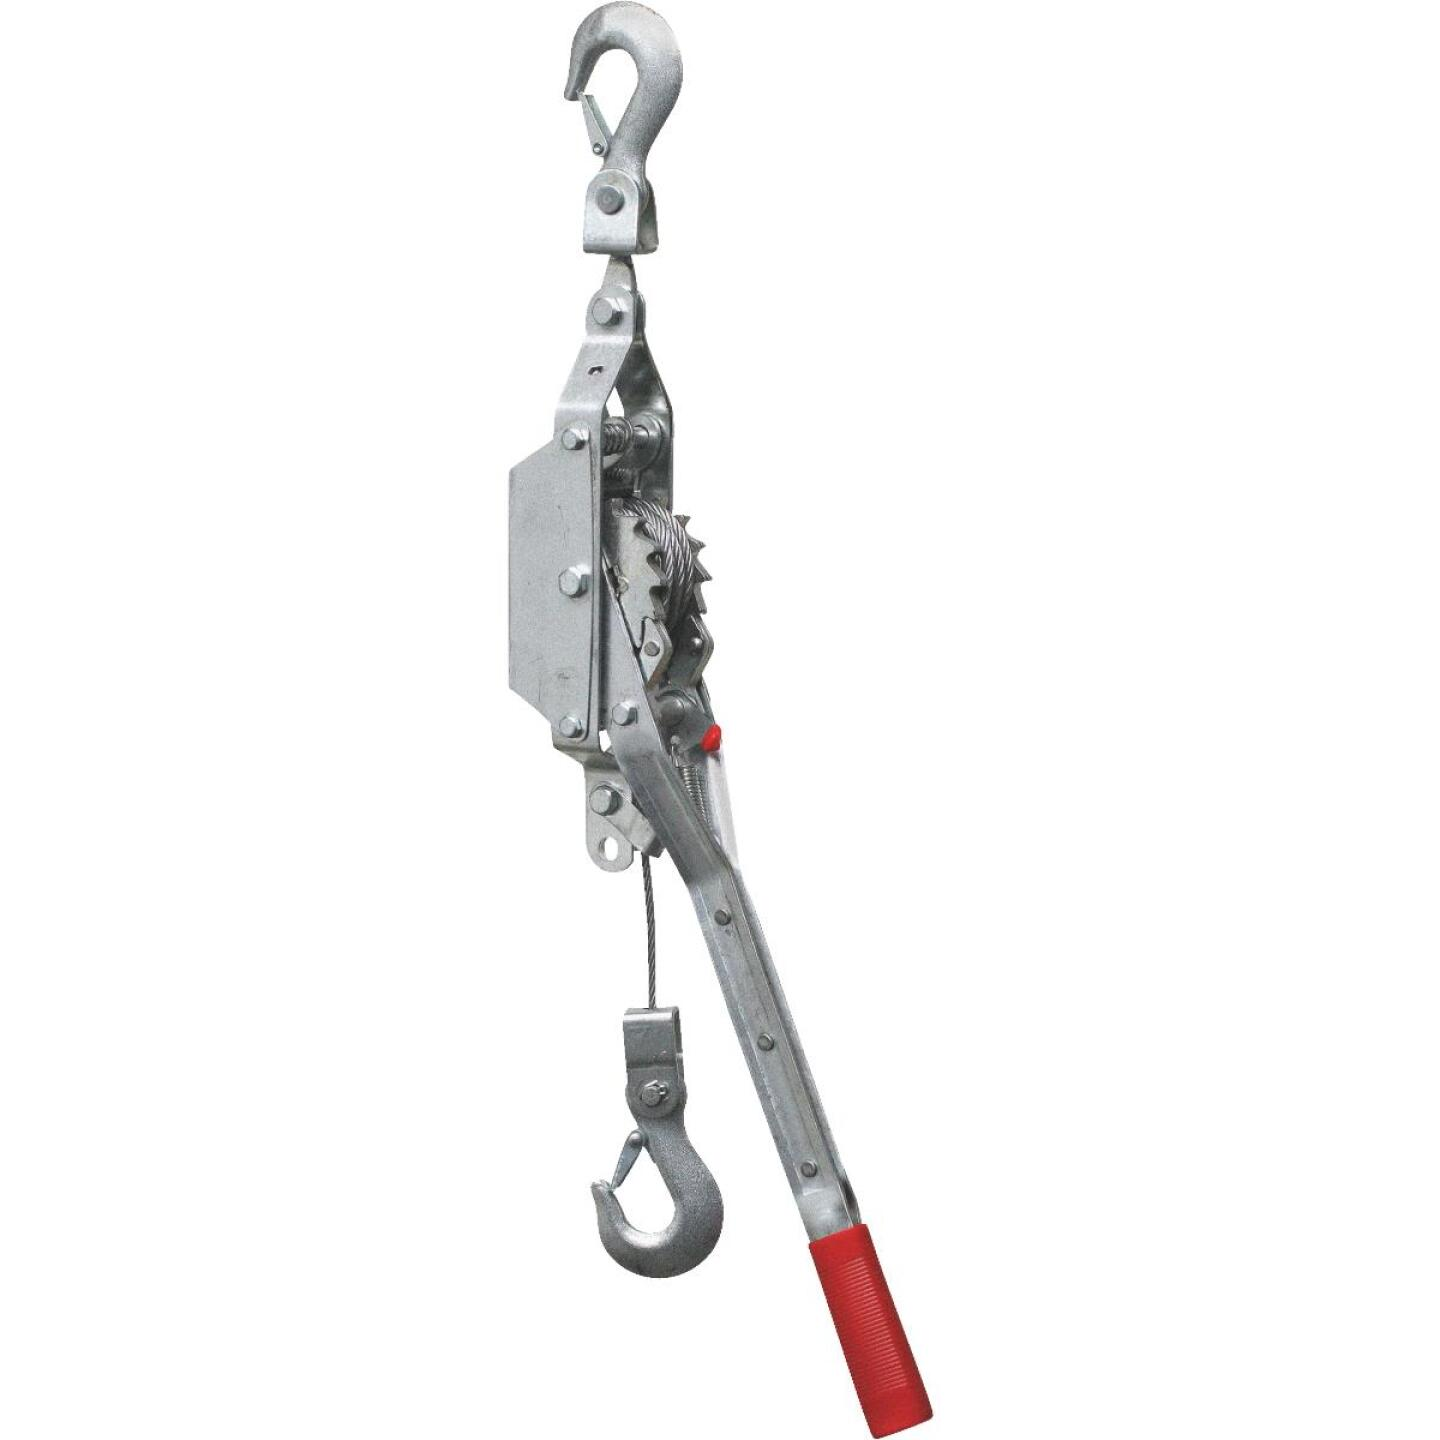 American Power Pull 1-Ton 12 Ft. Cable Puller Image 1